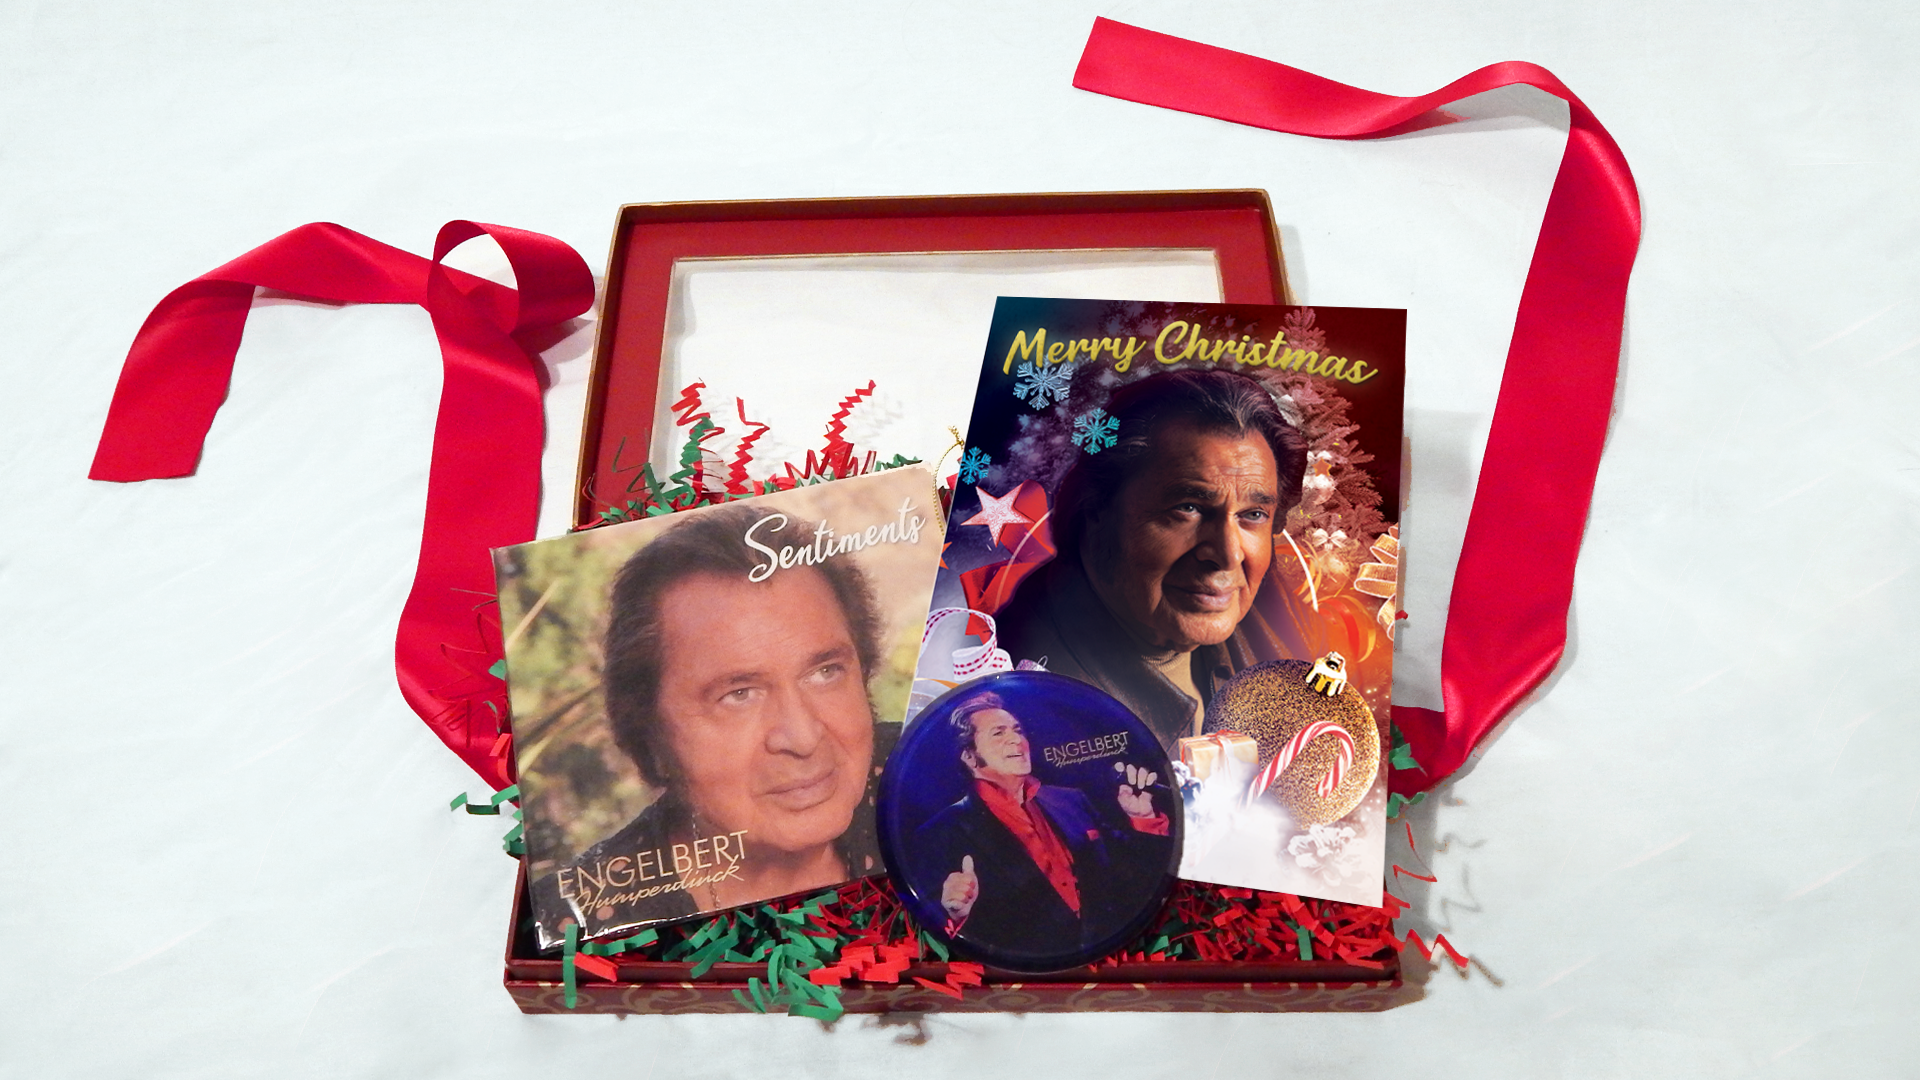 Engelbert Humperdinck Sentiments Christmas Gift Set